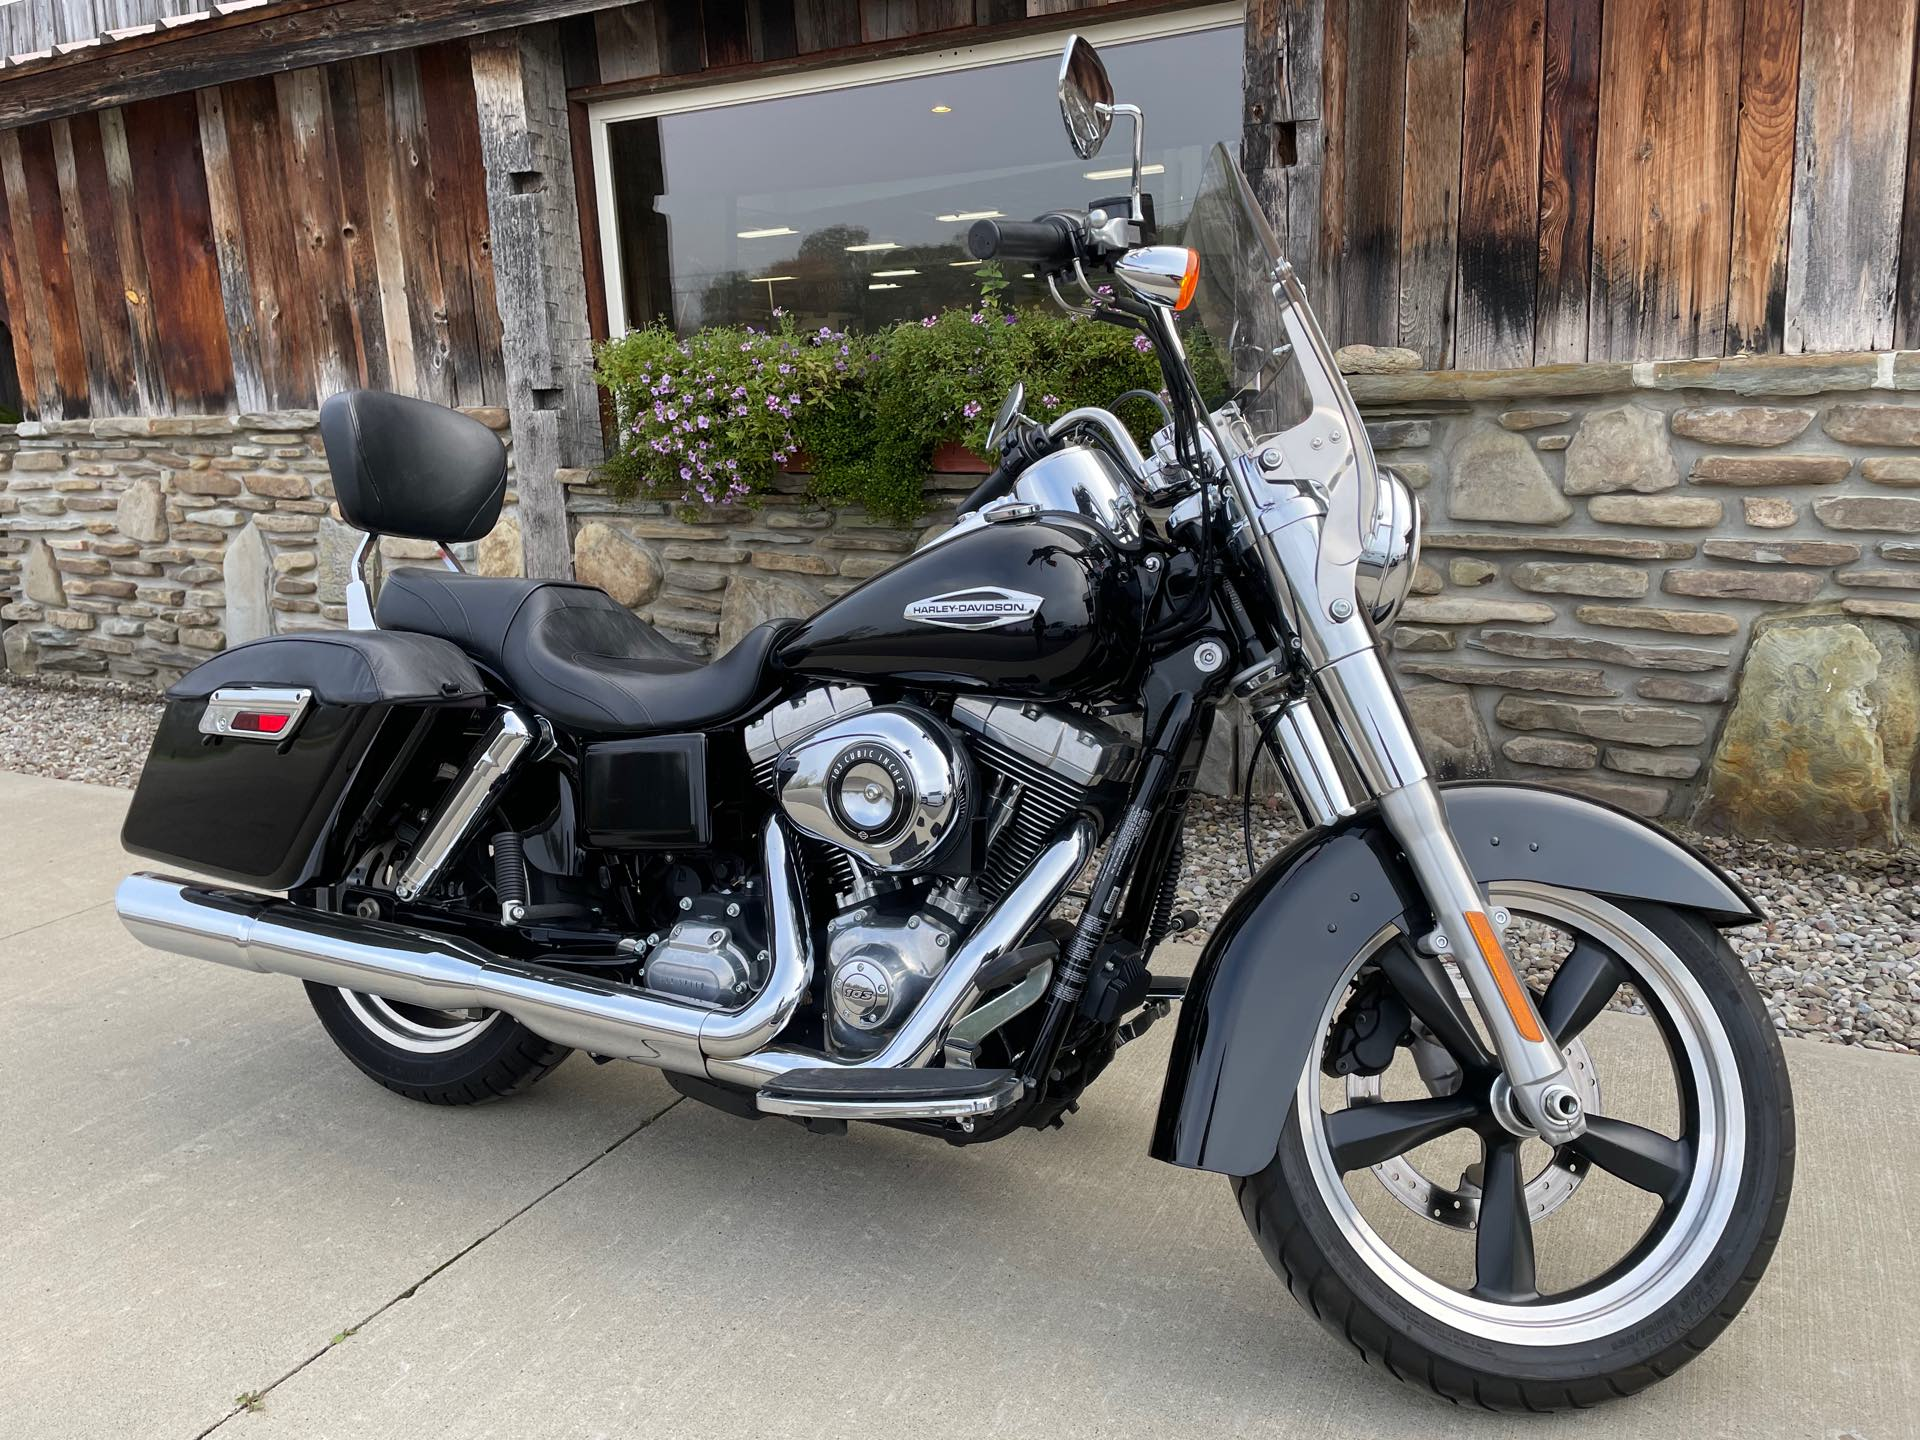 2012 Harley-Davidson Dyna Glide Switchback at Arkport Cycles